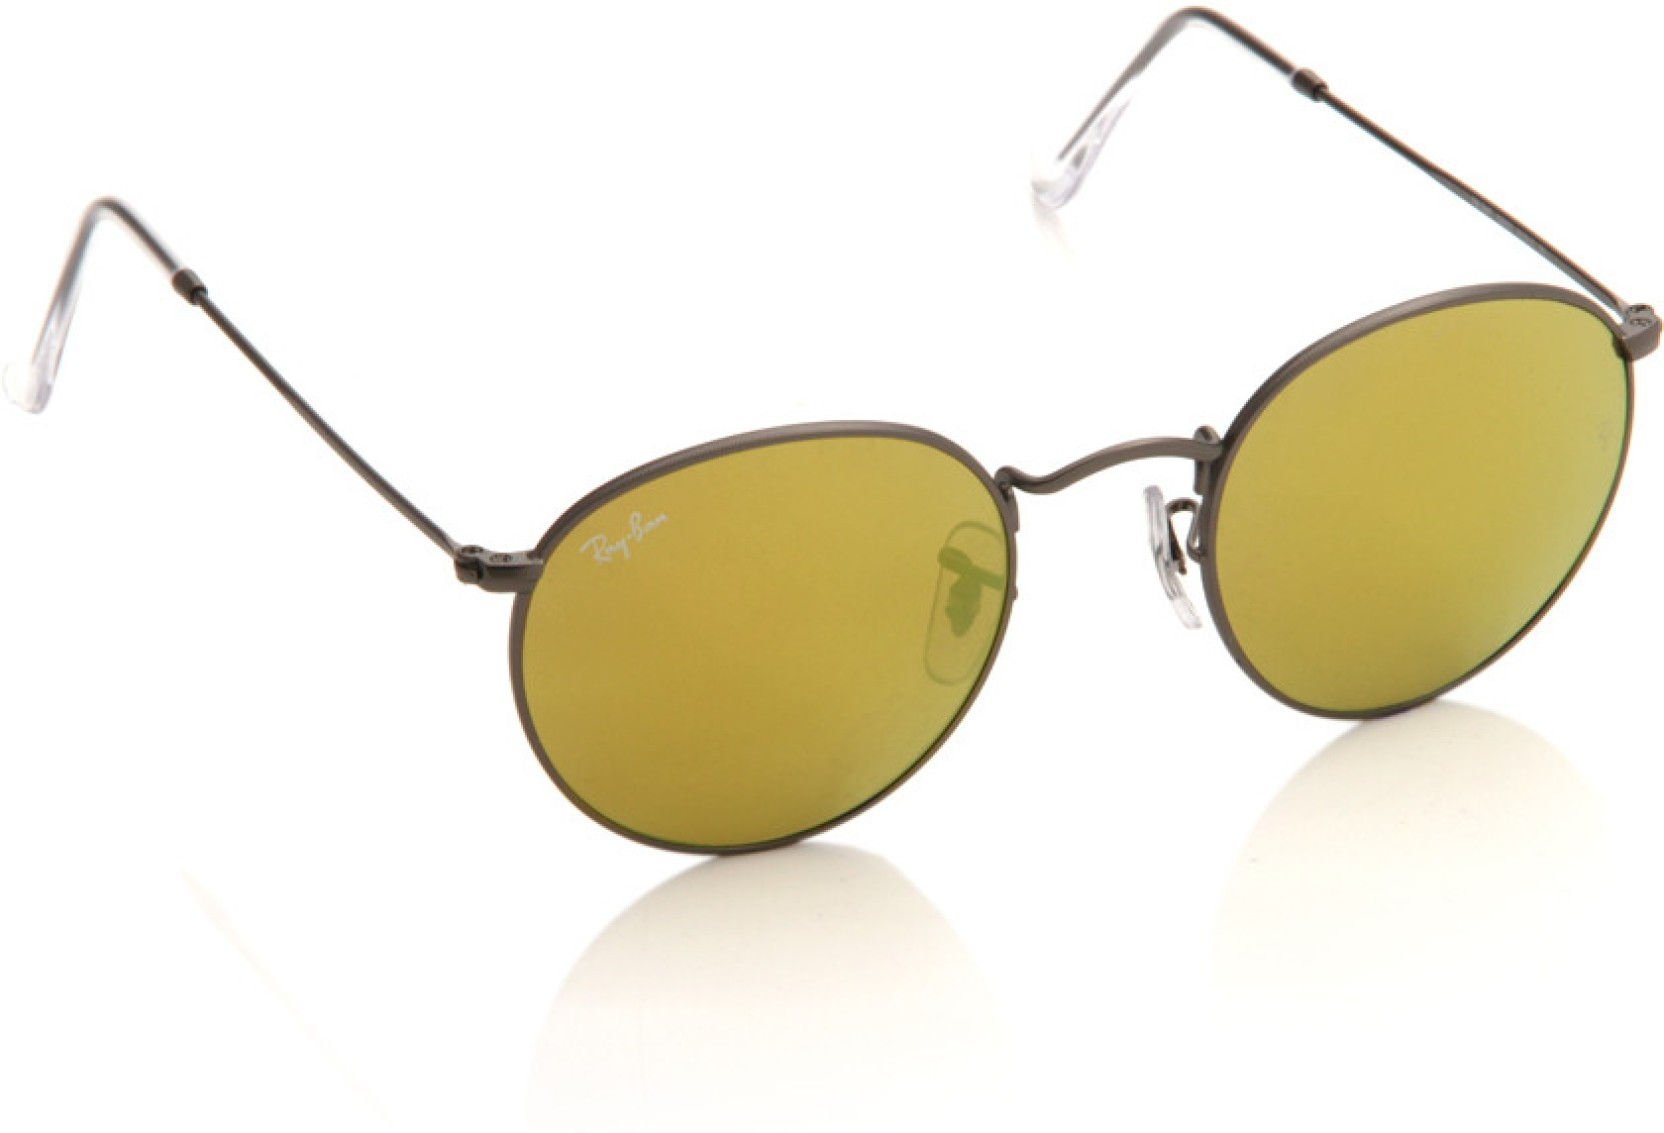 e01ffe1d75 Buy Ray-Ban Round Sunglasses Green For Men Online   Best Prices in ...